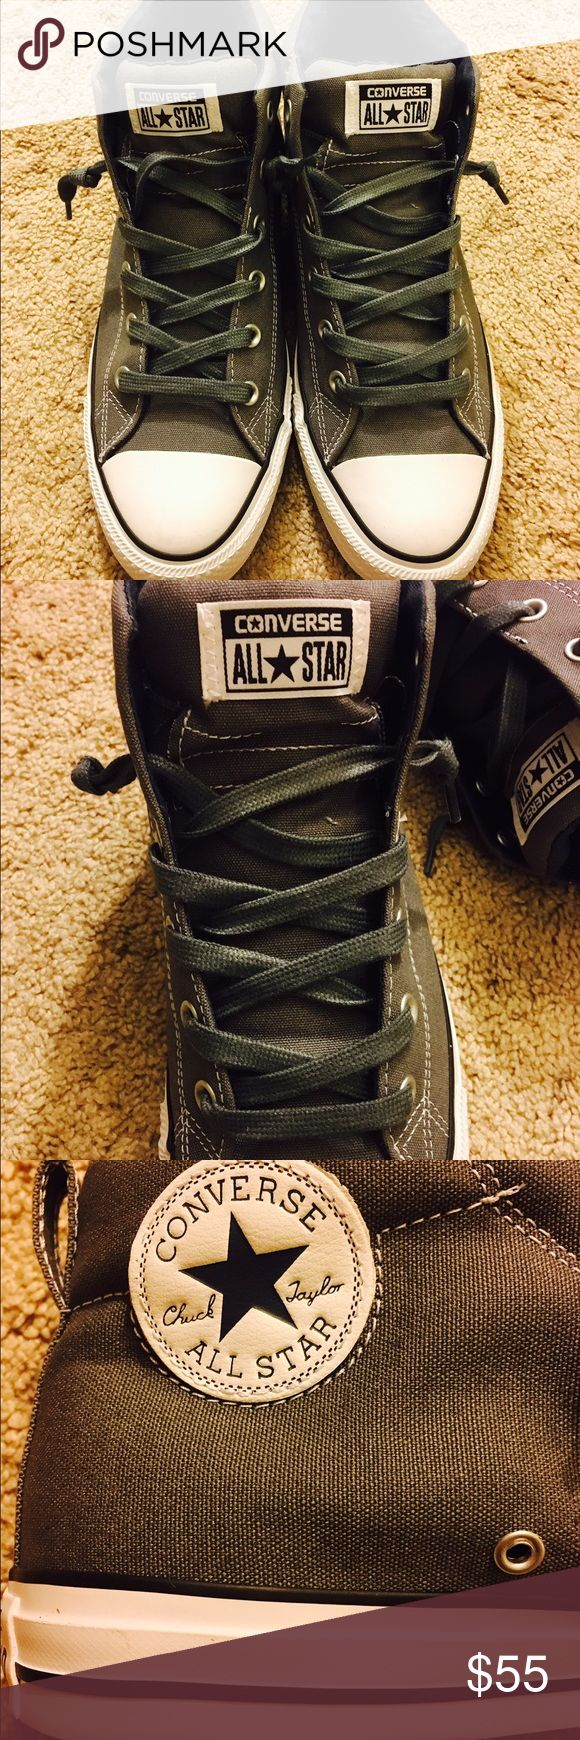 Chuck Taylor converse street mid rise style NEW CT converse shoes New! Never used. Dark grey padded inside is marine blue. New. Were too small for husband! Converse Shoes